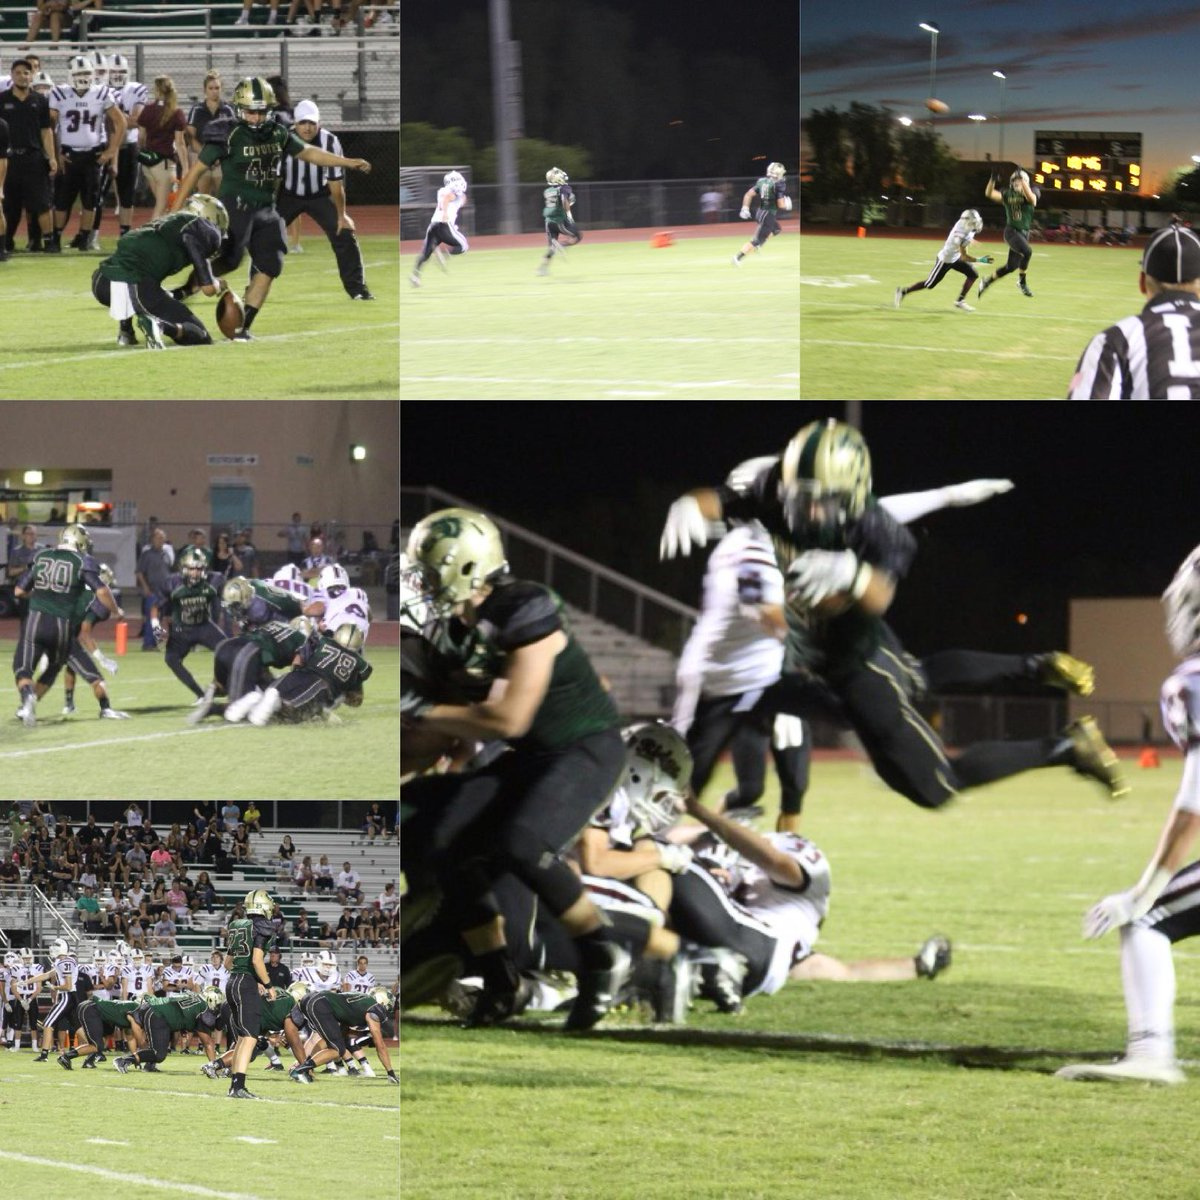 #TBT to @SkylineHS_FB firing on all cylinders to remain the only  #undefeated @mpsaz school! #football #homecoming http://t.co/AibKckMd3M